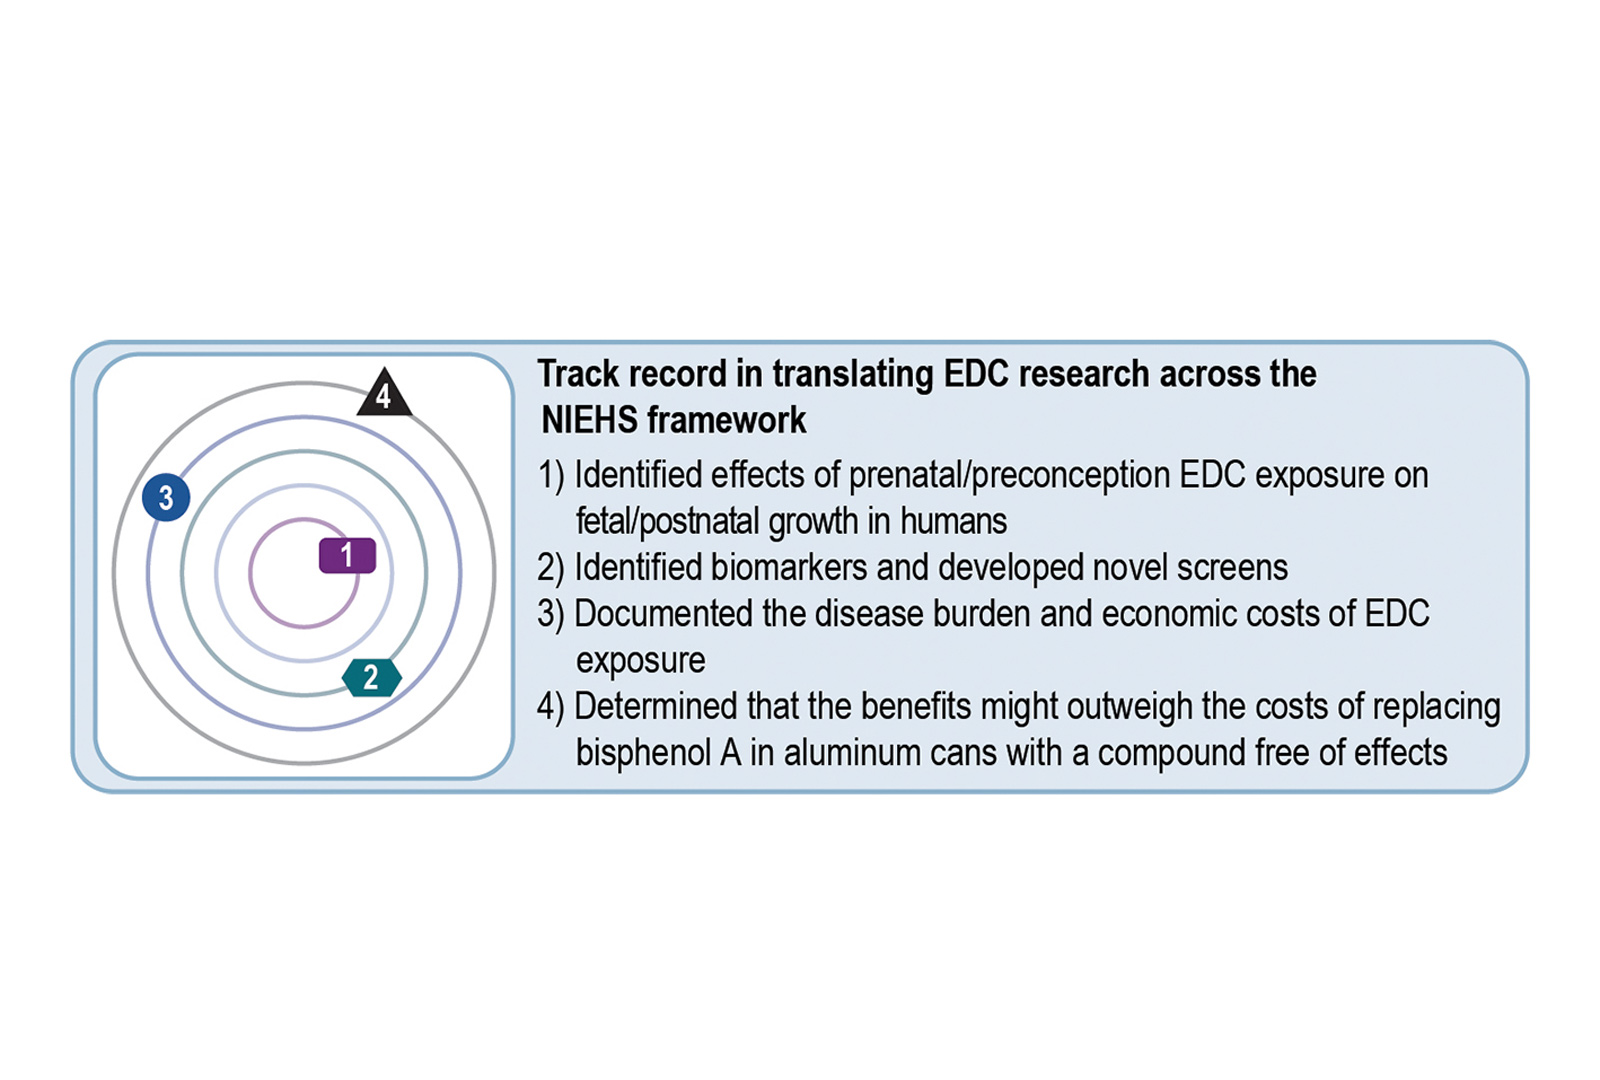 The center translates endocrine-disrupting chemical research across the NIEHS translational research framework from identifying effects of prenatal/postconception EDC exposure on fetal/postnatal growth in humans to determining that the benefits might outweigh the costs of replacing bisphenol A in aluminum cans with a compound free of effects.